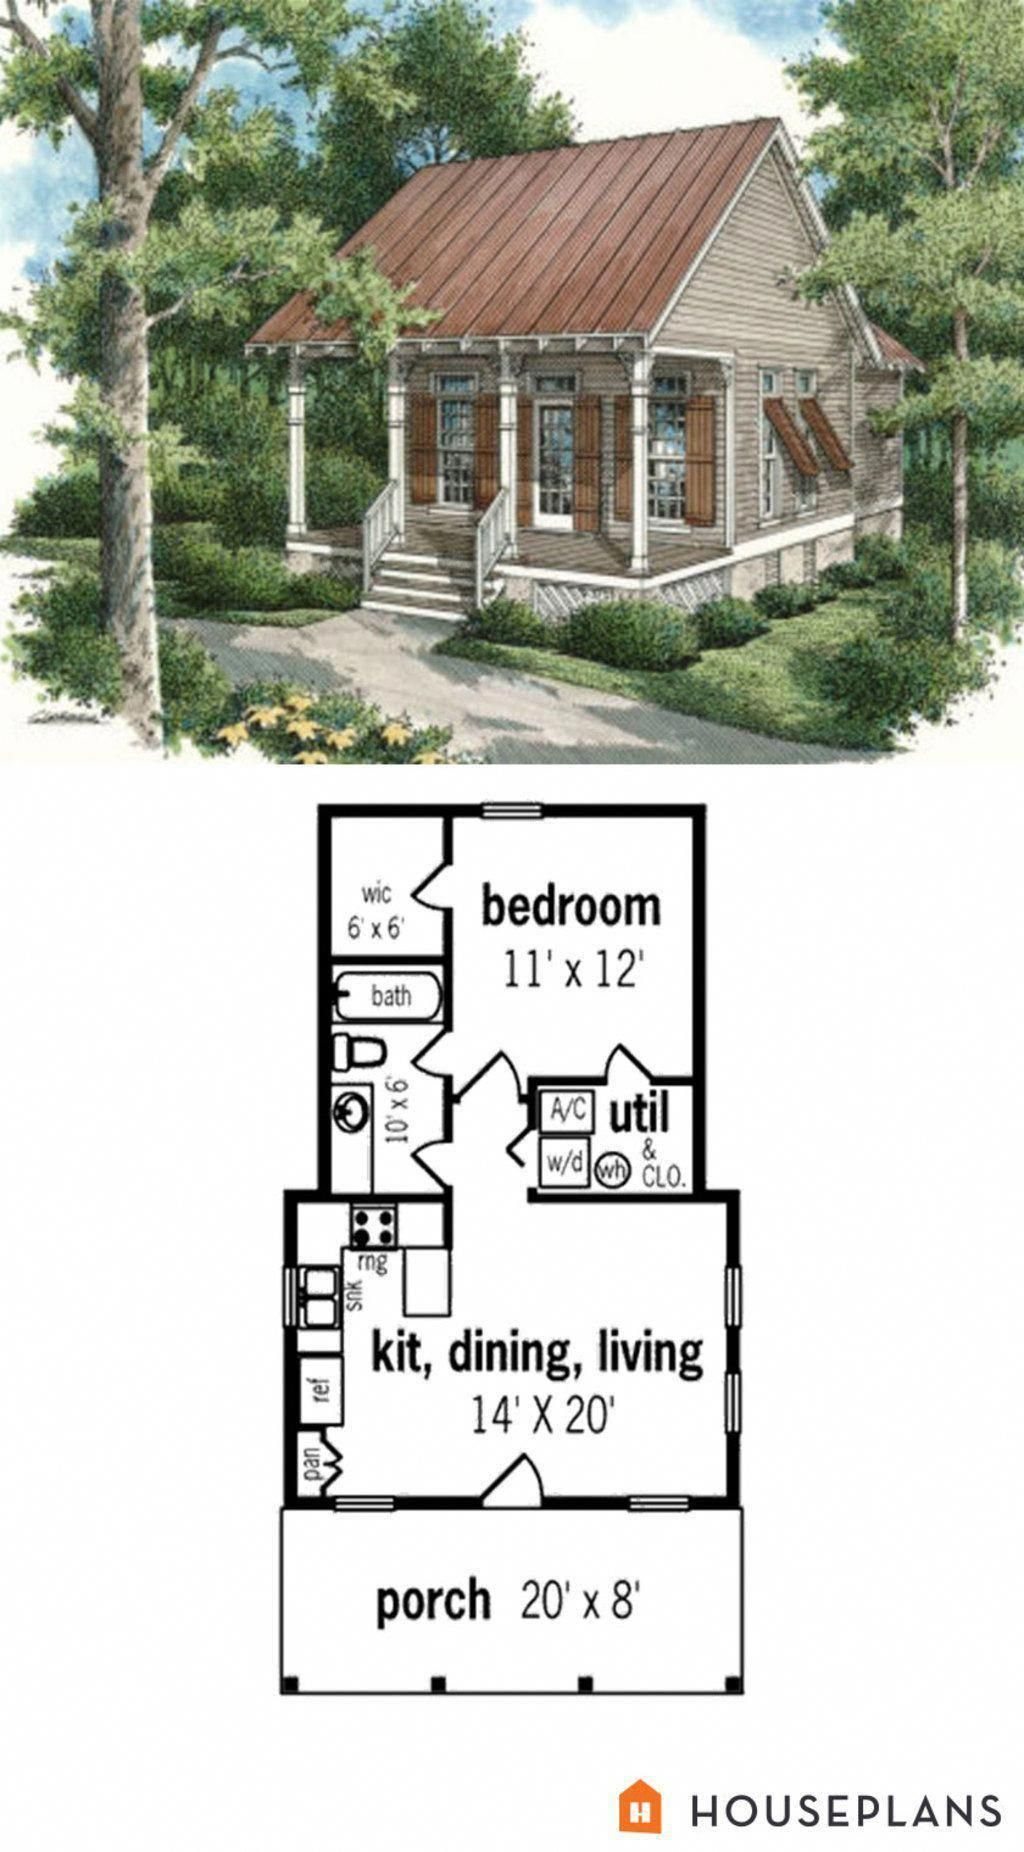 Cottage Style House Plan 1 Beds 1 Baths 569 Sq Ft Plan 45 334 Beachcottagestyle Coastalstyle Cottage Style House Plans Cottage Style Homes Cottage Plan